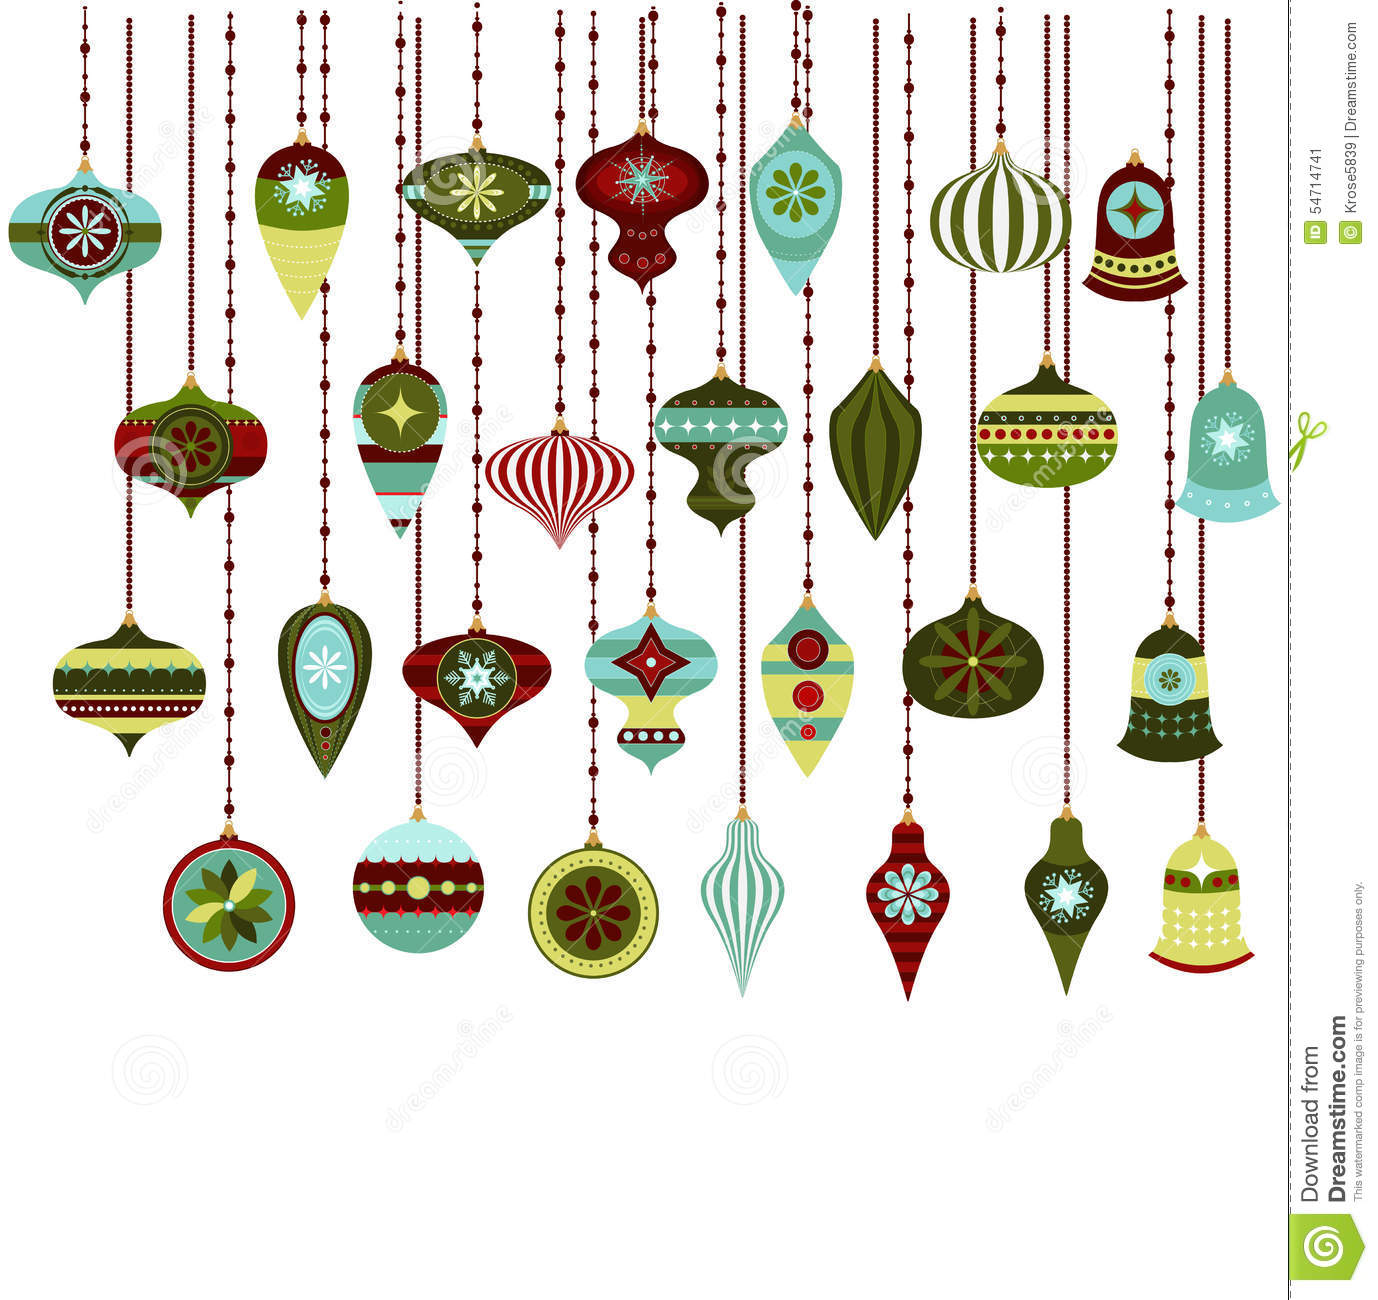 Retro Christmas Ornaments Vector Clipart Stock Vector - Image ...